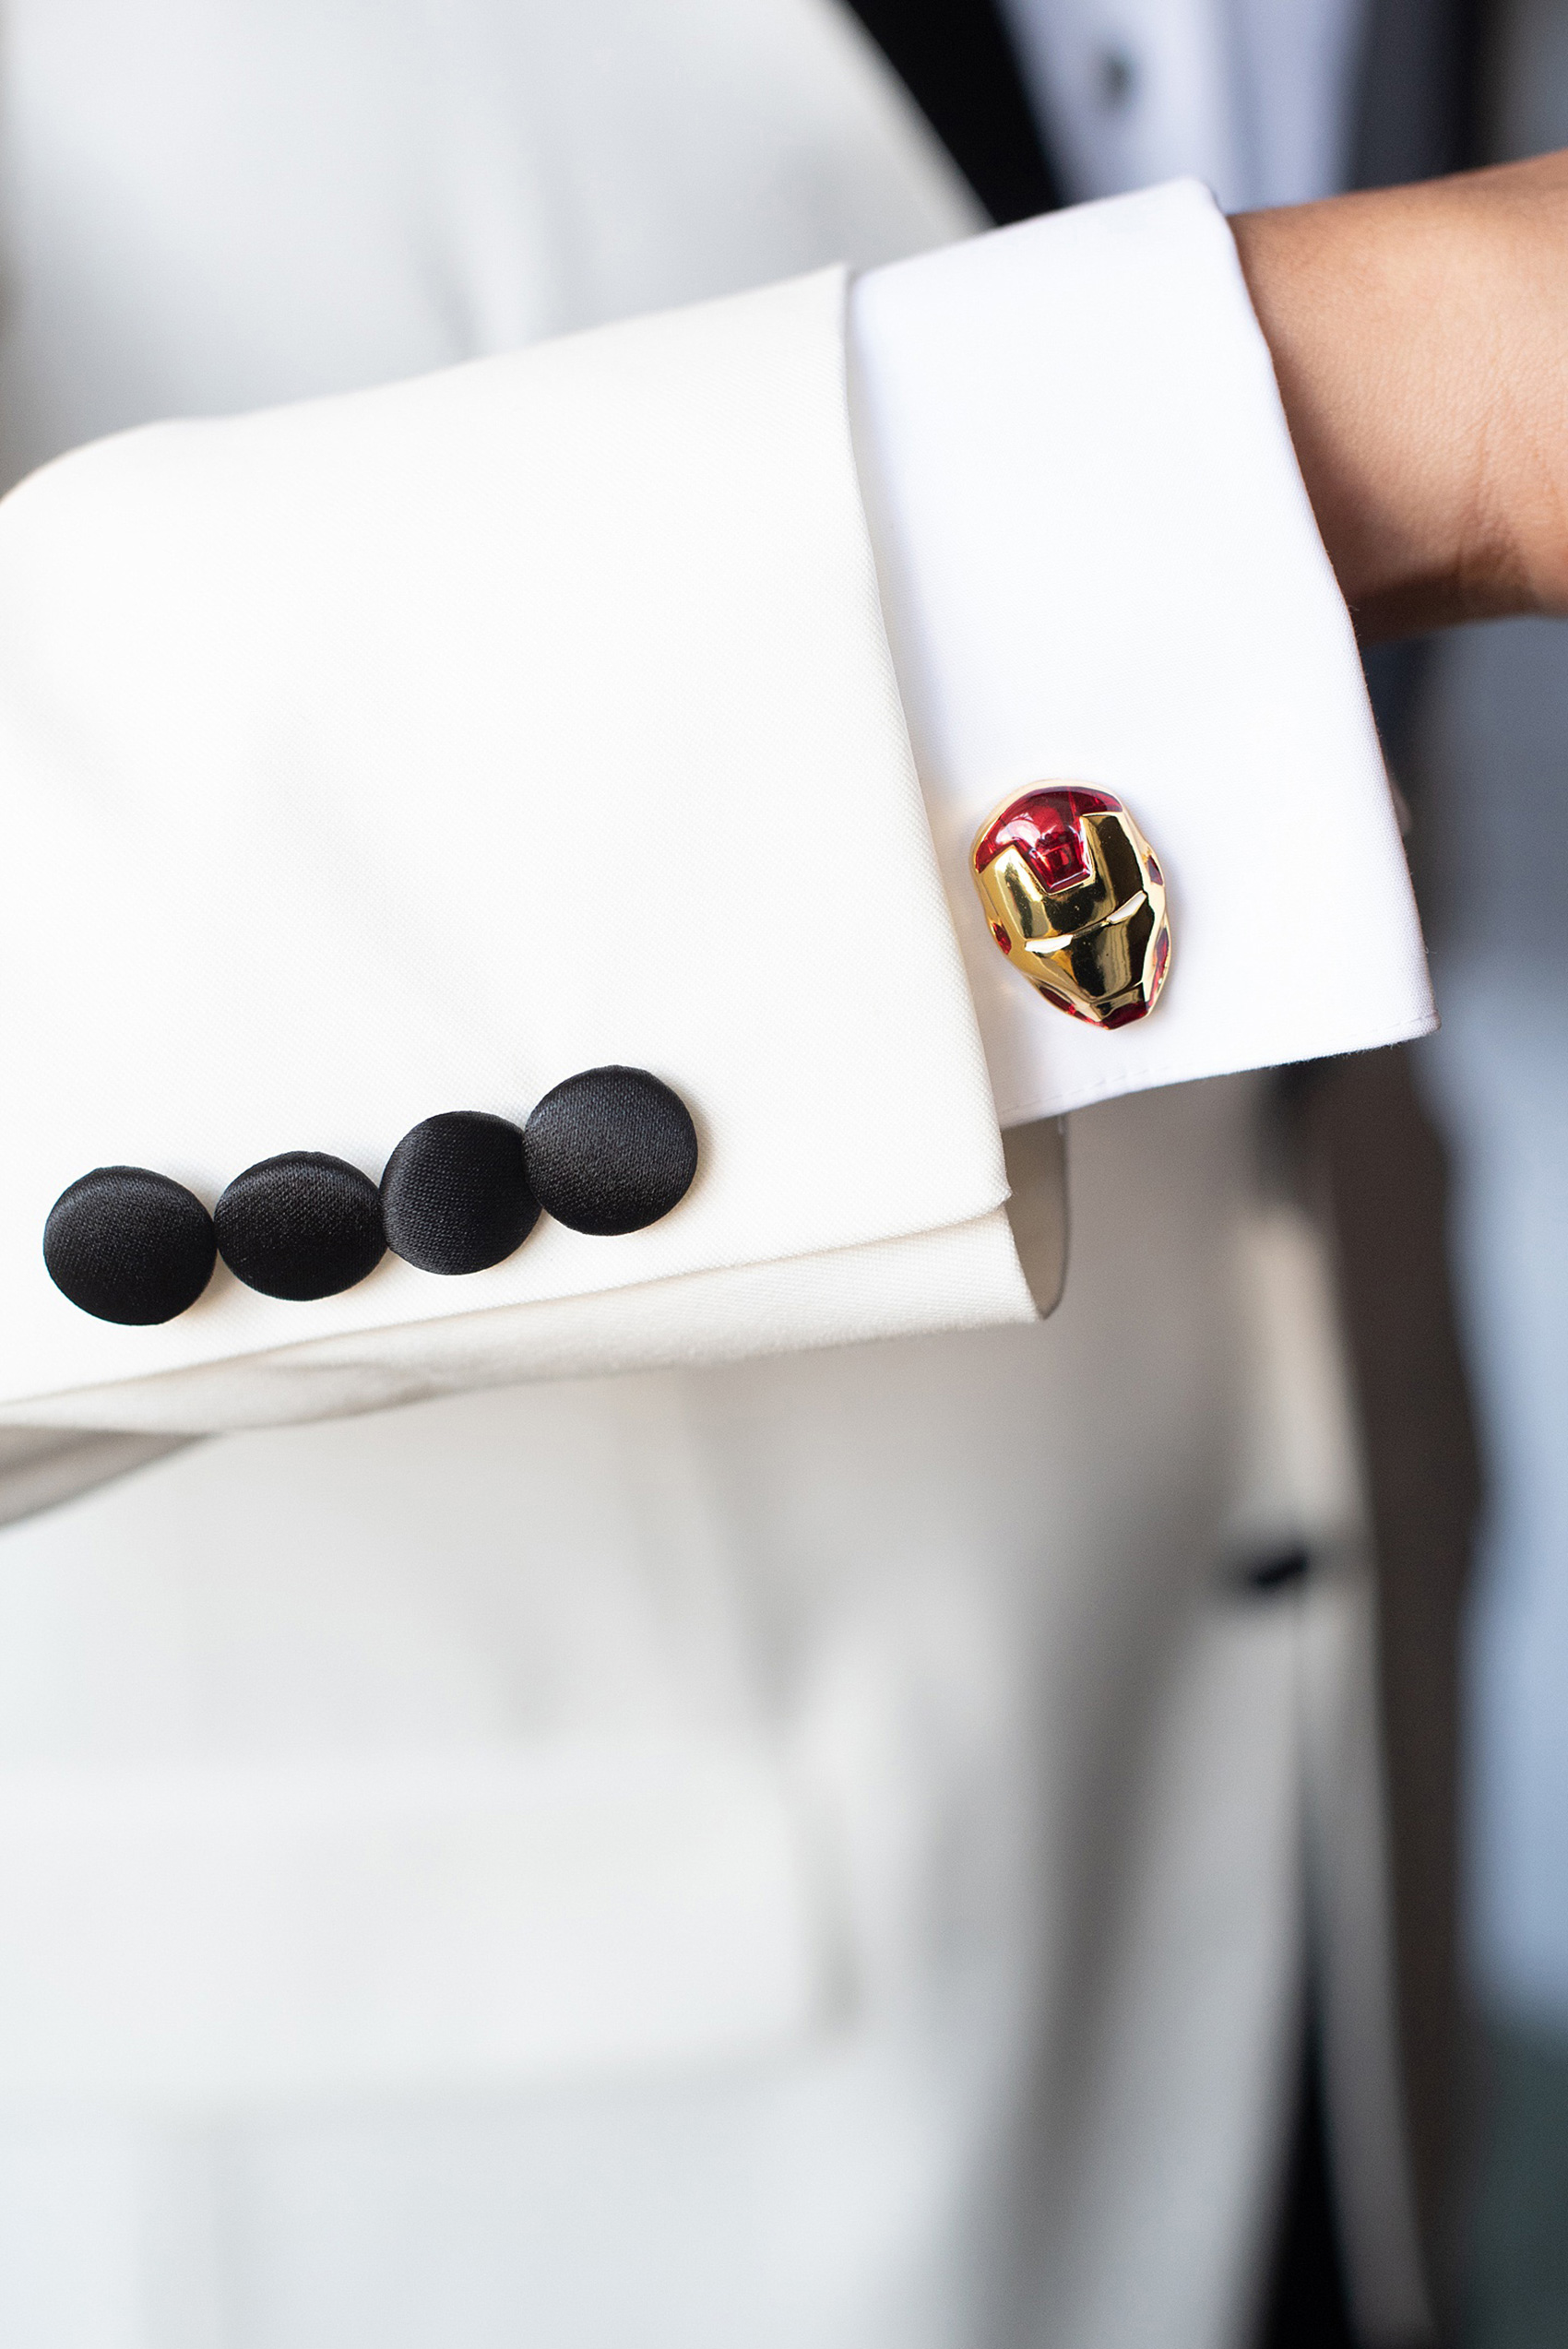 Photographs of a Walt Disney World groom by Mikkel Paige Photography. As a lover of Marvel comics, he wove a small detail from Iron Man into his white tuxedo with gold and red cufflinks. He got ready for his day at the dream resort, the Grand Floridian, with his groomsmen and wore a red rose boutonniere for his bride's love of a Beauty and the Beast theme. #disneywedding #disneybride #waltdisneyworld #DisneyWorldWedding